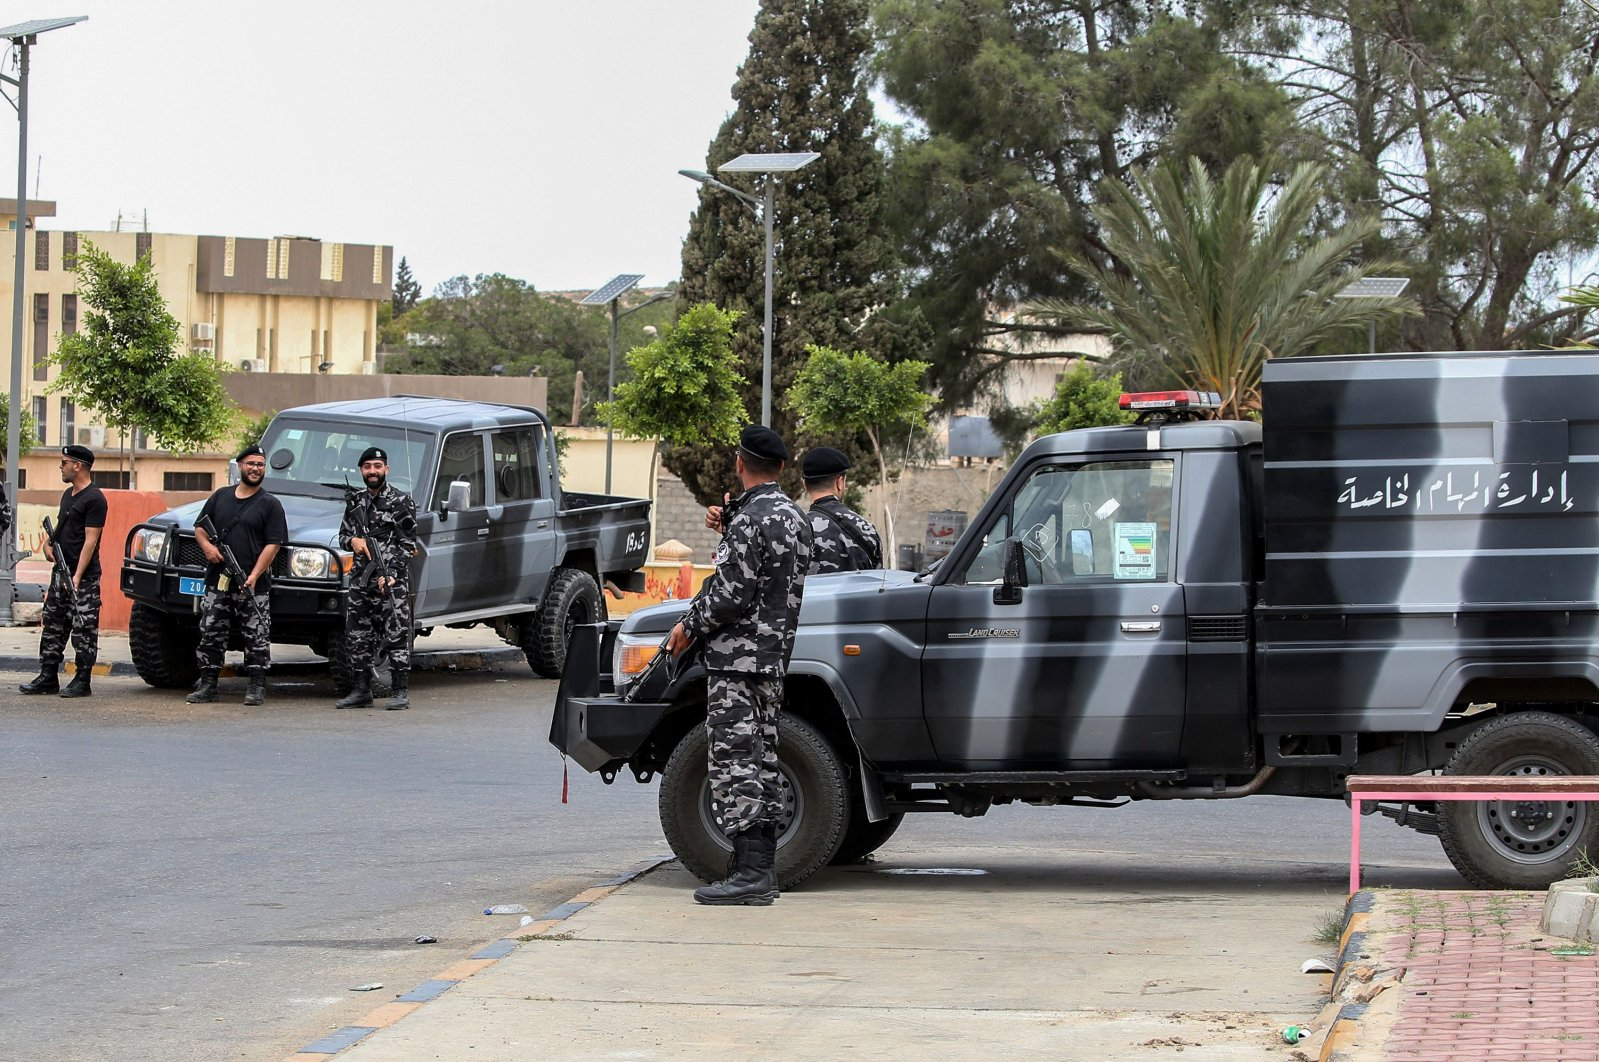 Members of security forces affiliated with the Libyan Government of National Accord (GNA)'s Interior Ministry stand at a makeshift checkpoint in the town of Tarhuna, about 65 kilometers southeast of the capital Tripoli, June 11, 2020. (AFP Photo)